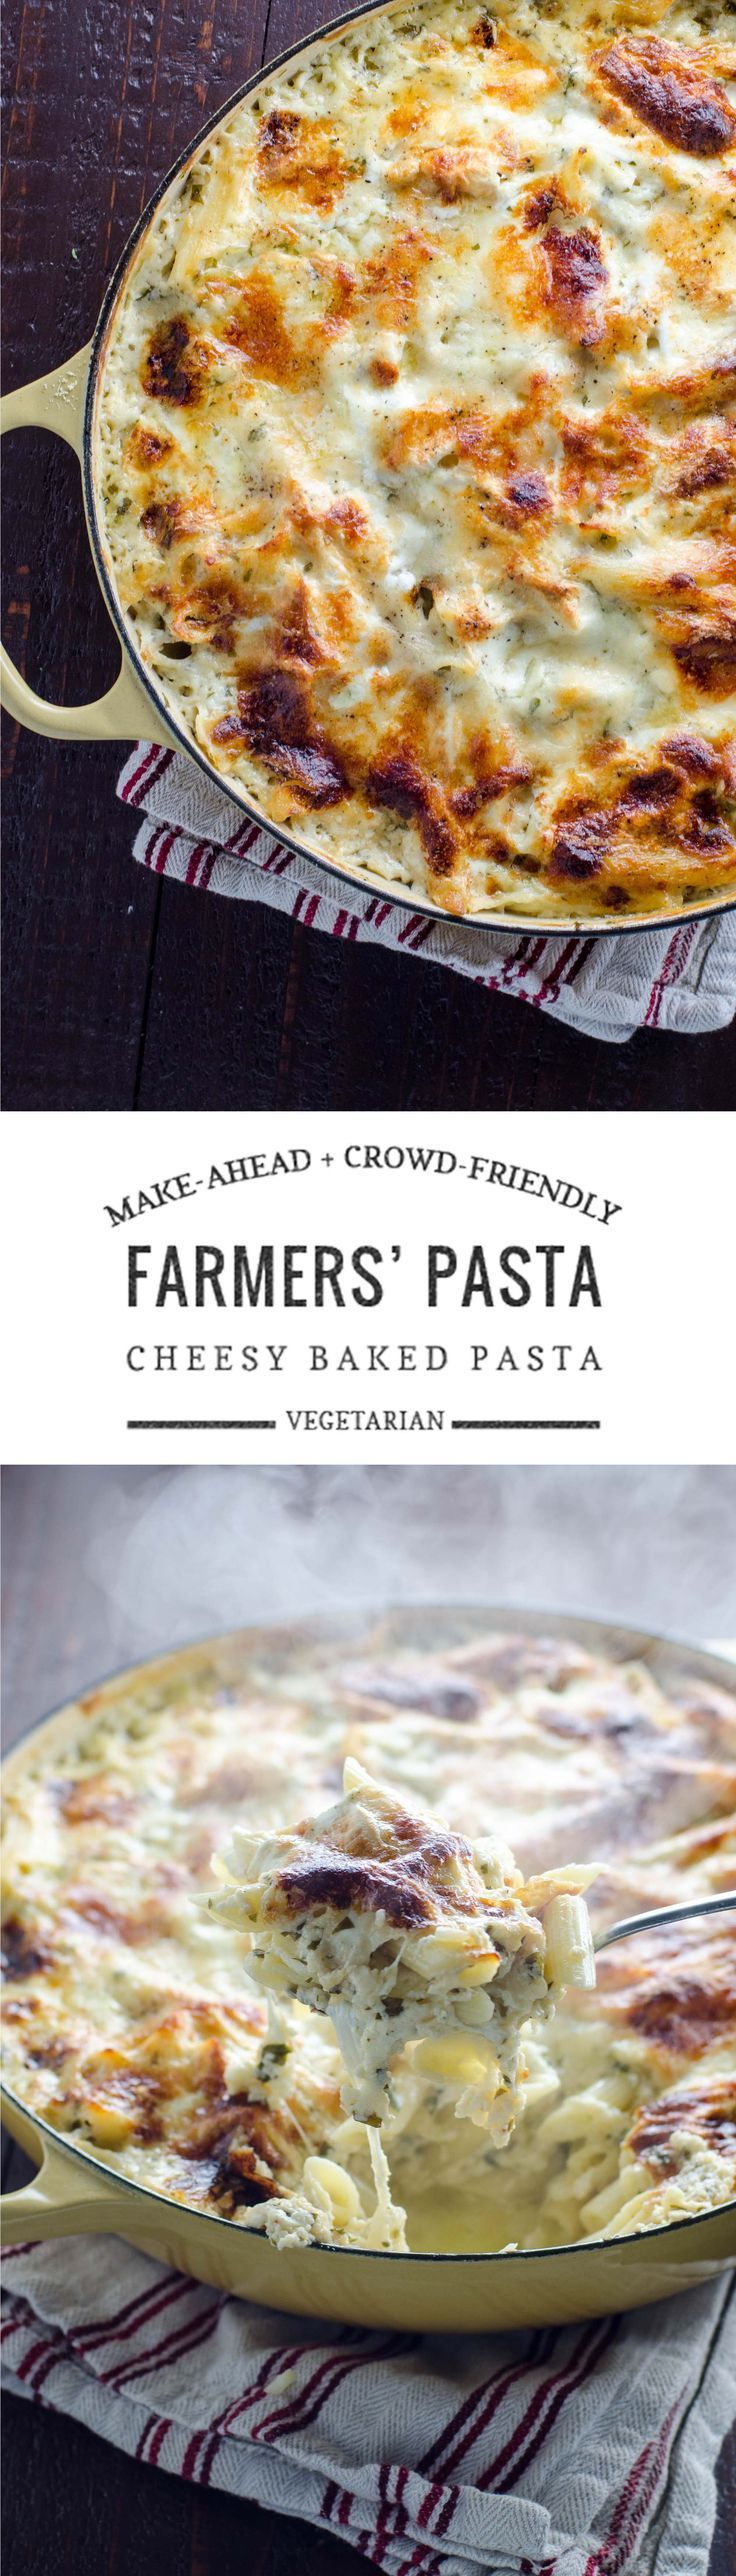 Farmers' Pasta: Vegetarian Baked Pasta To Feed A Crowd Vegetarian Pasta  Bakechristmas